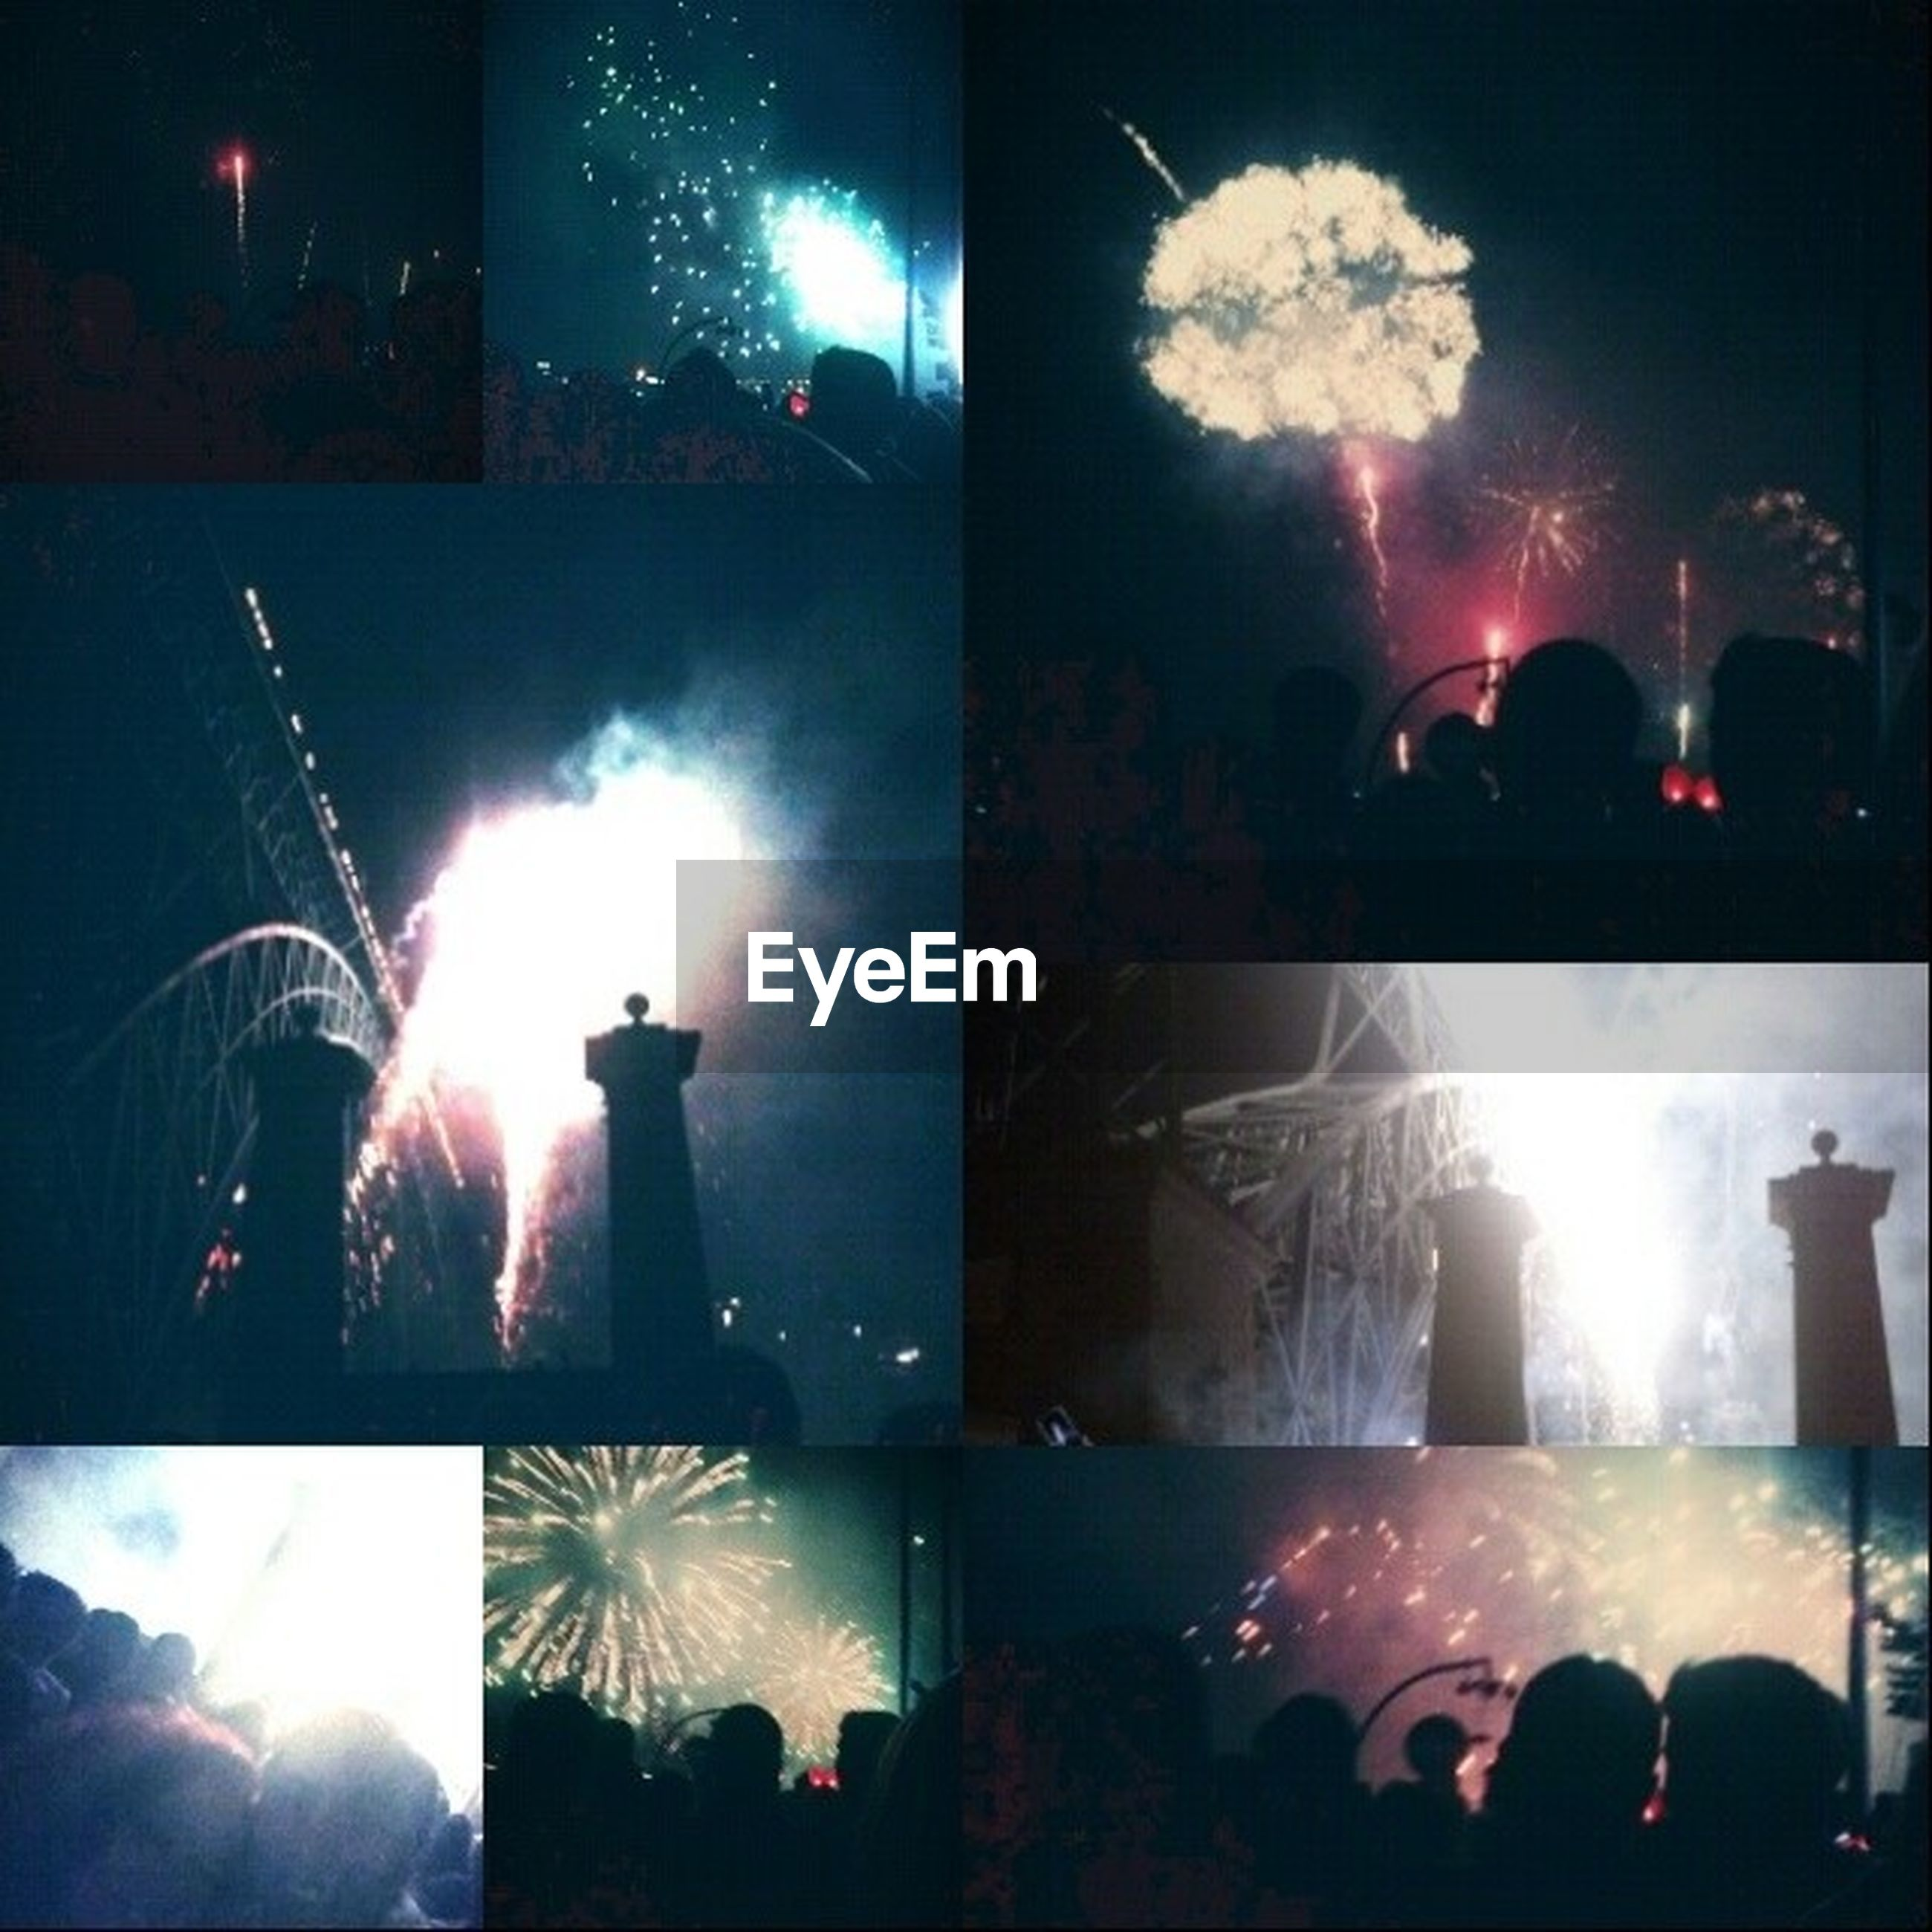 illuminated, night, lighting equipment, celebration, glowing, arts culture and entertainment, light - natural phenomenon, event, firework display, indoors, exploding, built structure, dark, light, street light, smoke - physical structure, nightlife, men, sparks